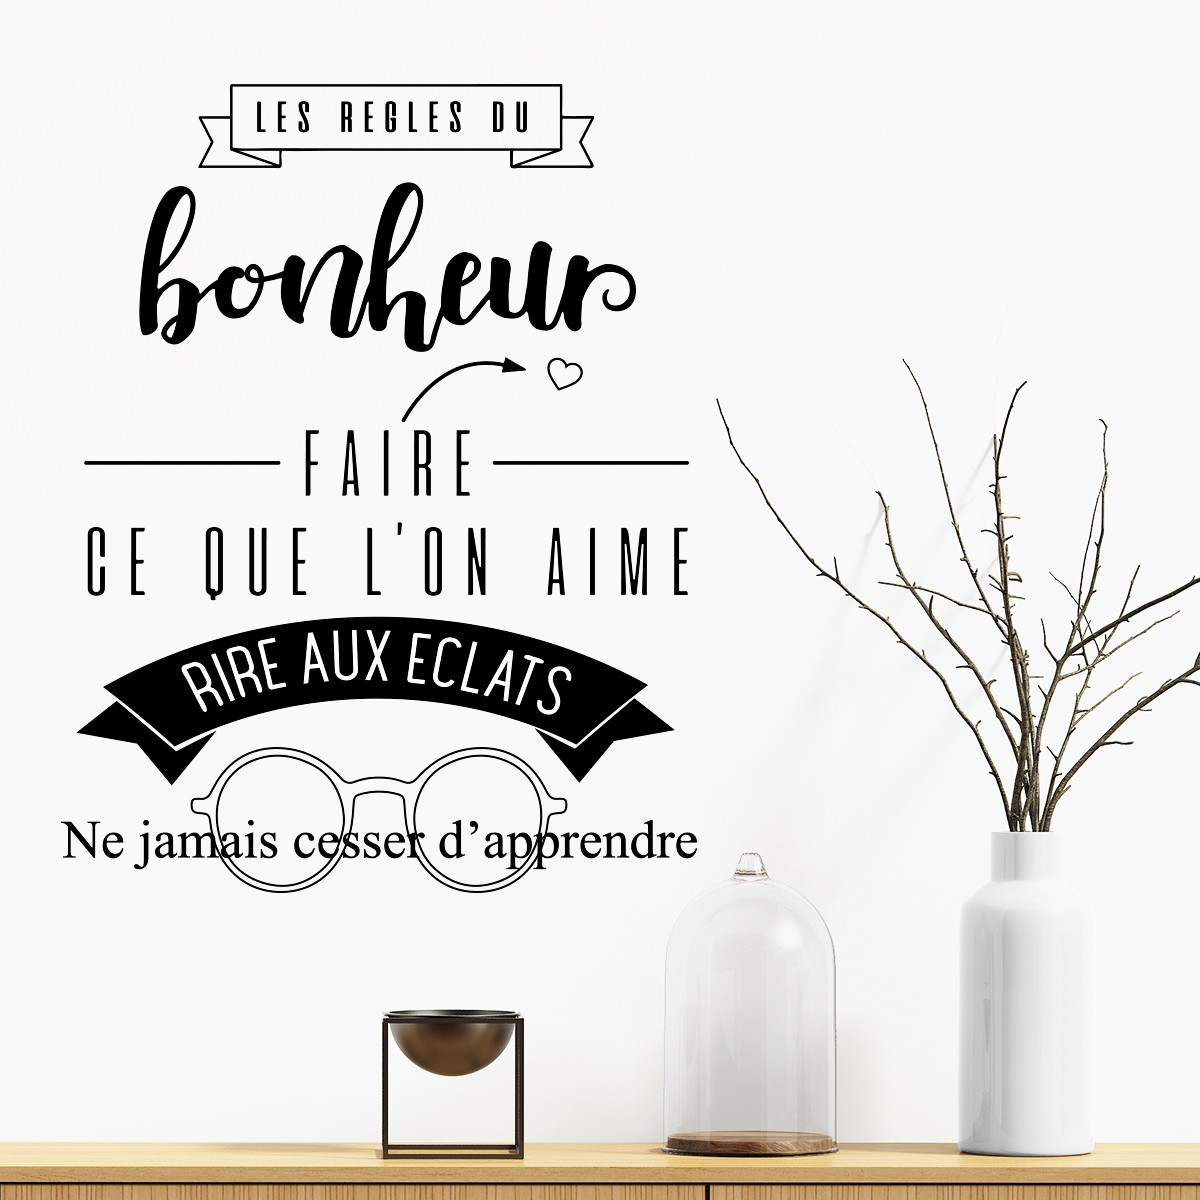 sticker citation les regles du bonheur stickers citations fran ais ambiance sticker. Black Bedroom Furniture Sets. Home Design Ideas